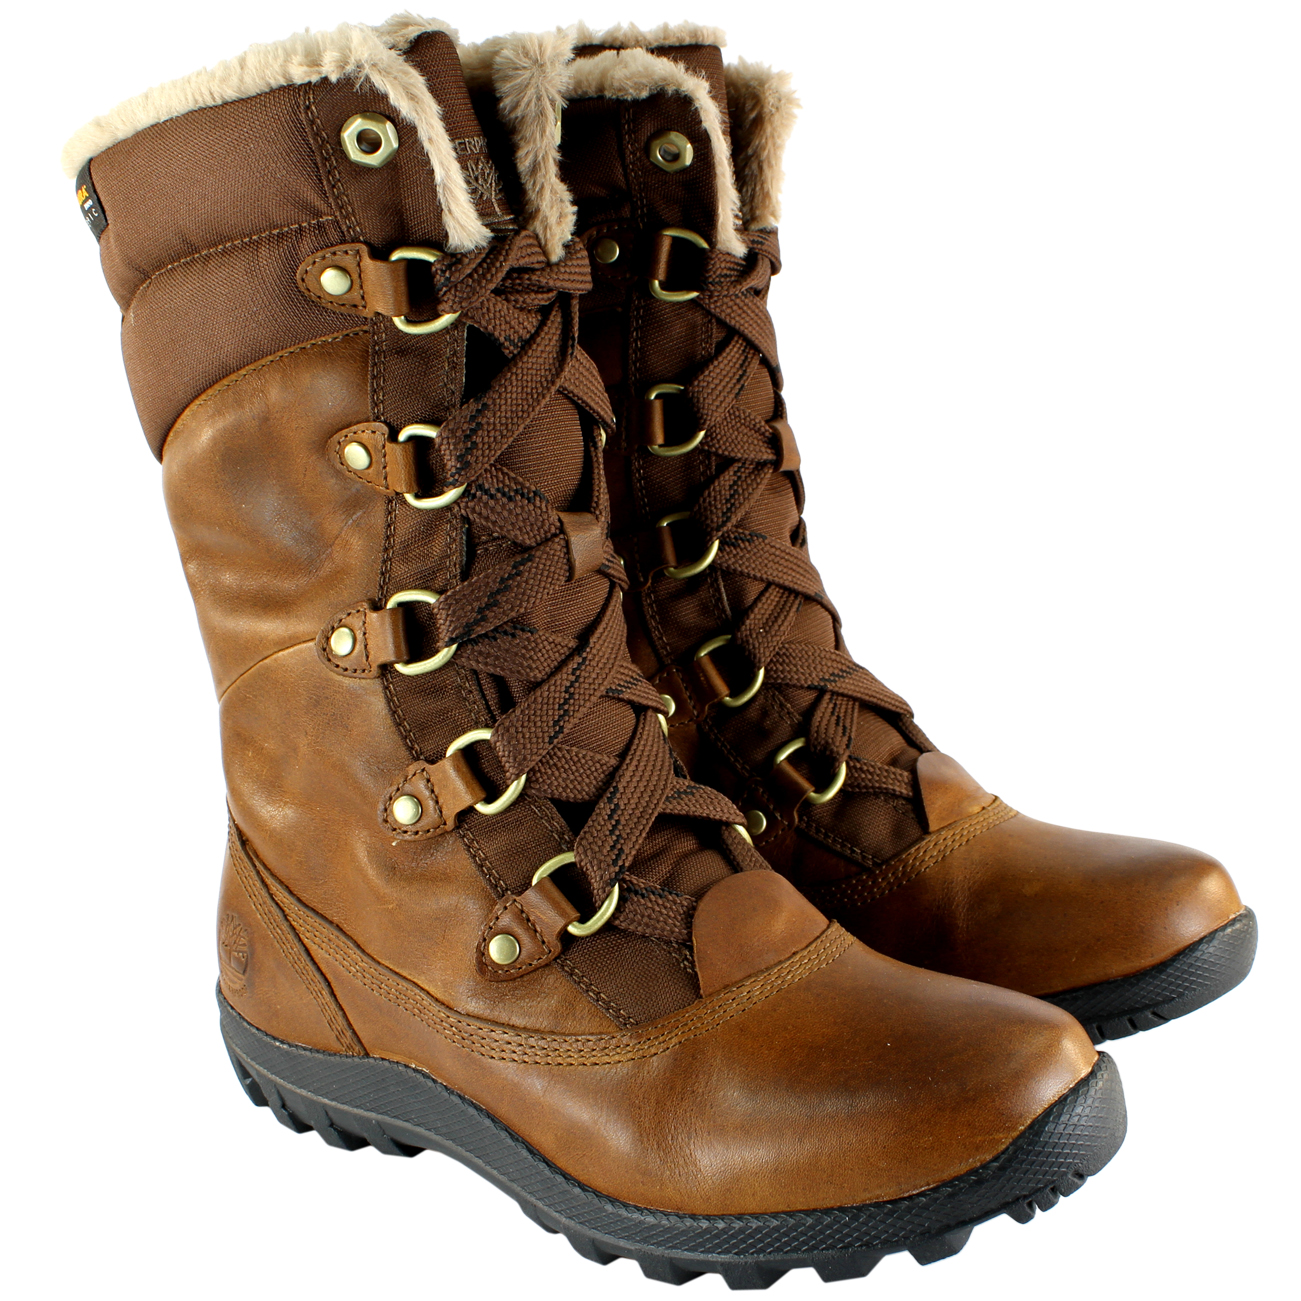 Timberland Mount Hope Mid Earthkeepers Mid Calf Boots